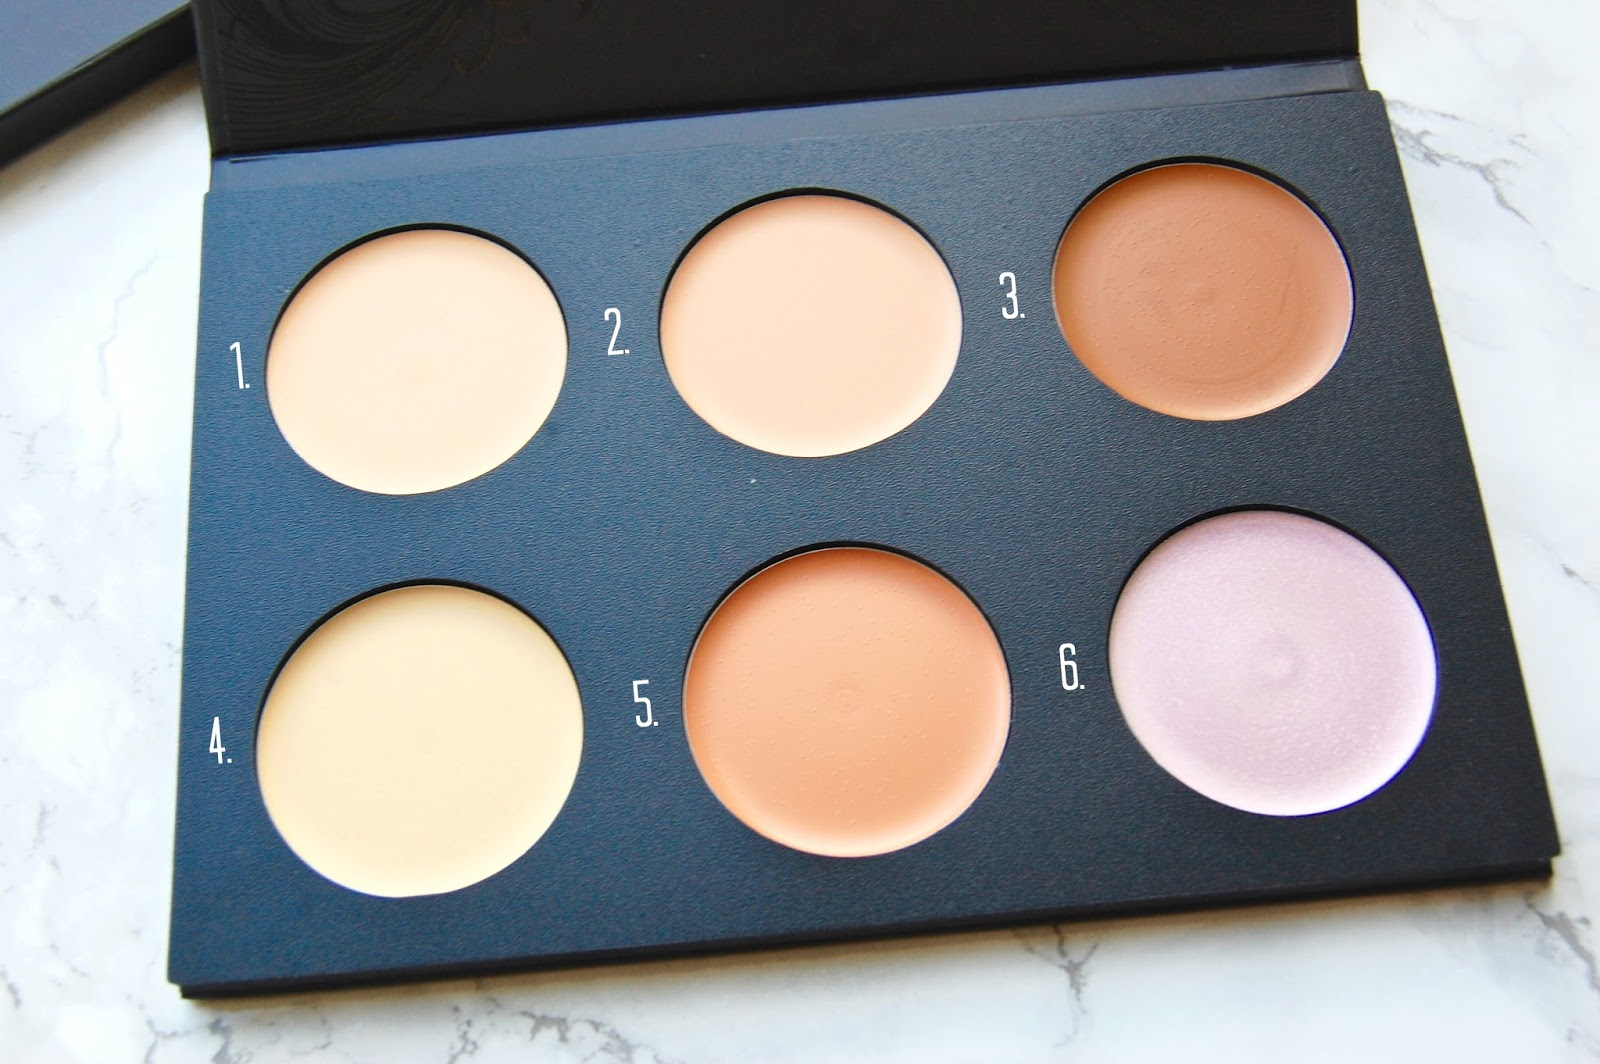 Read more on the MeMeMe Complete Contour and Highlight Kit